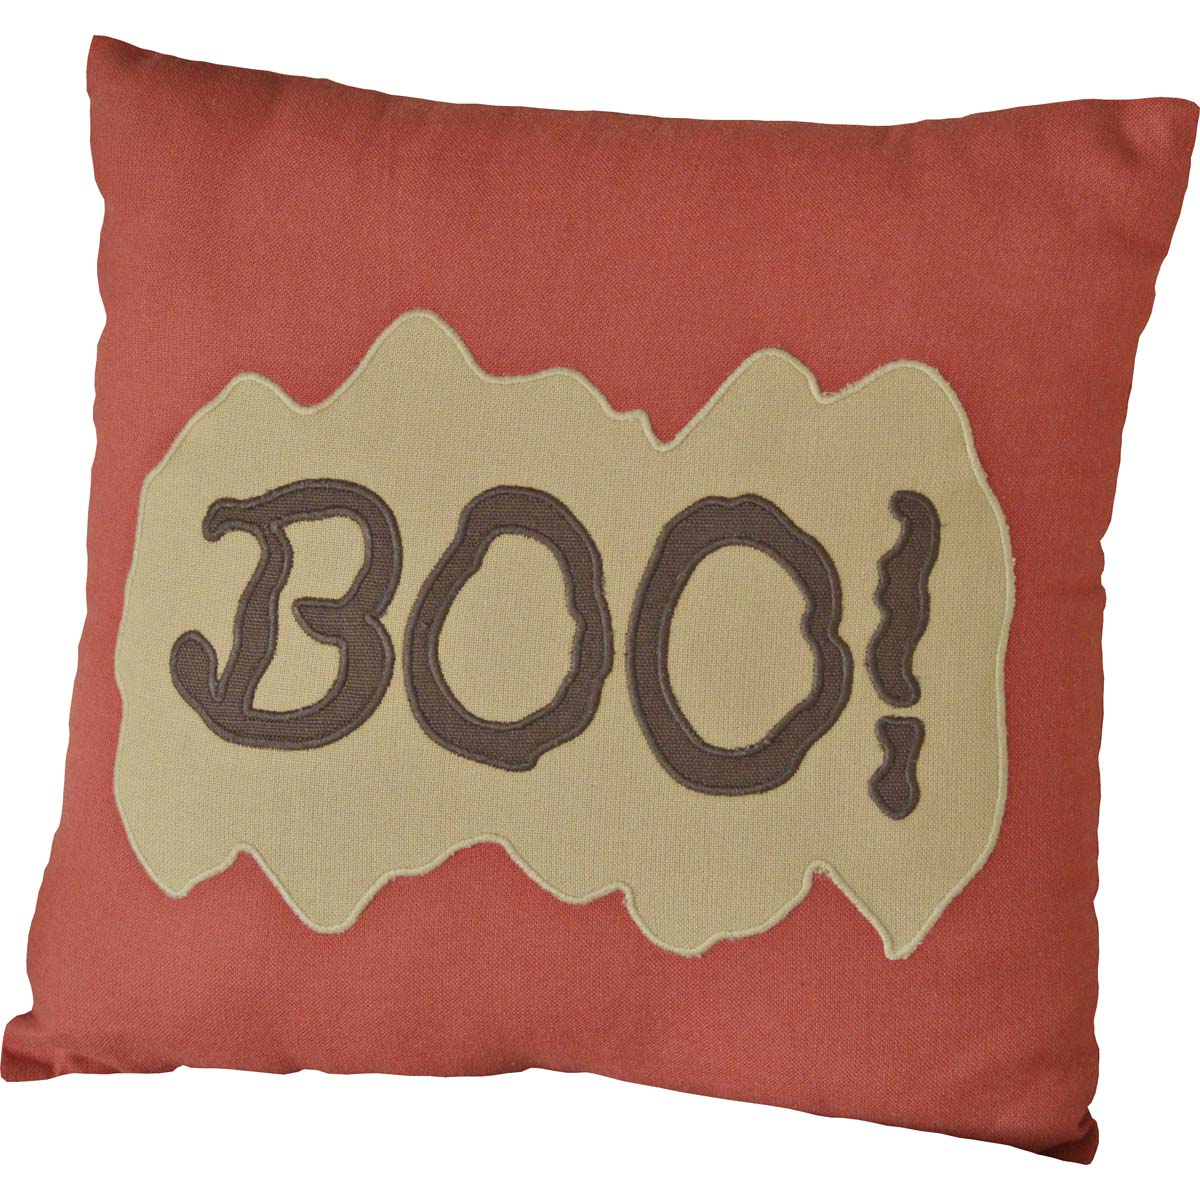 Boo Pillow 12x12